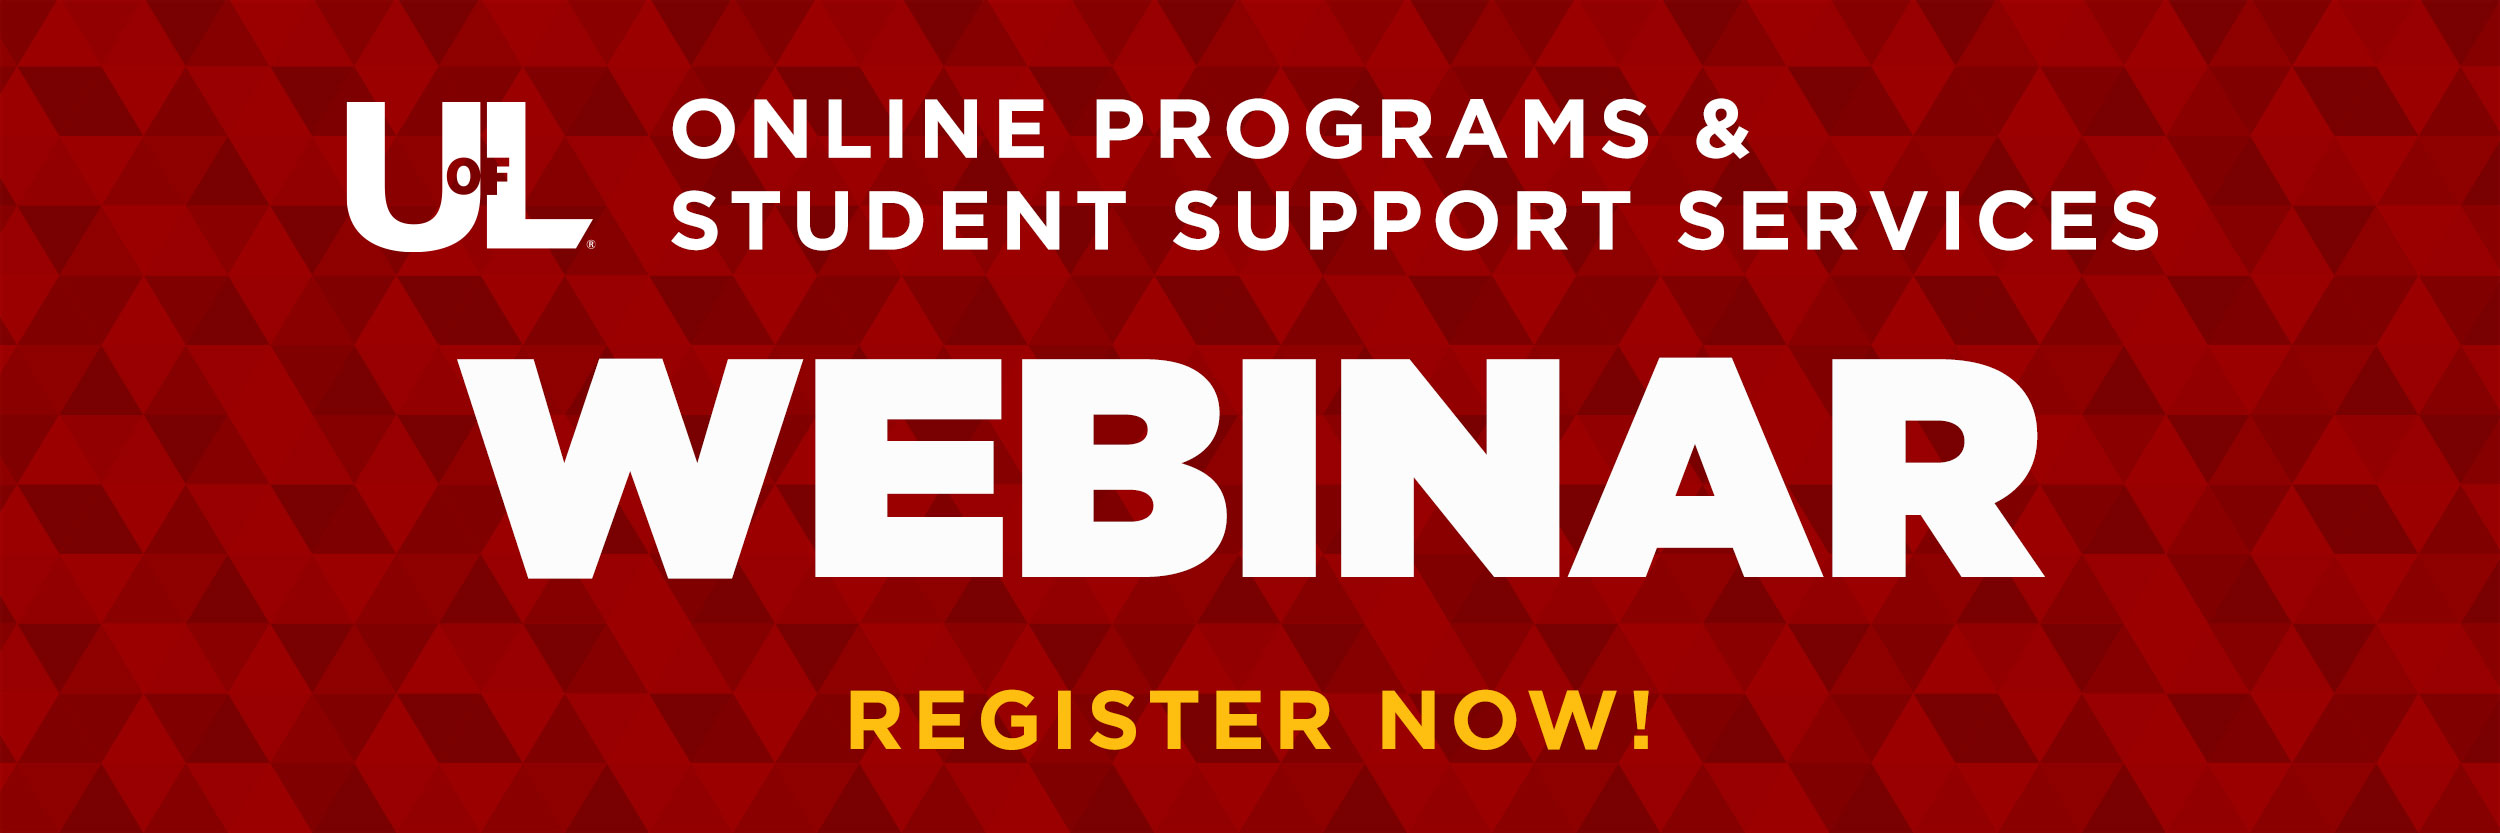 UofL Online Programs & Student Support Services, Register Now